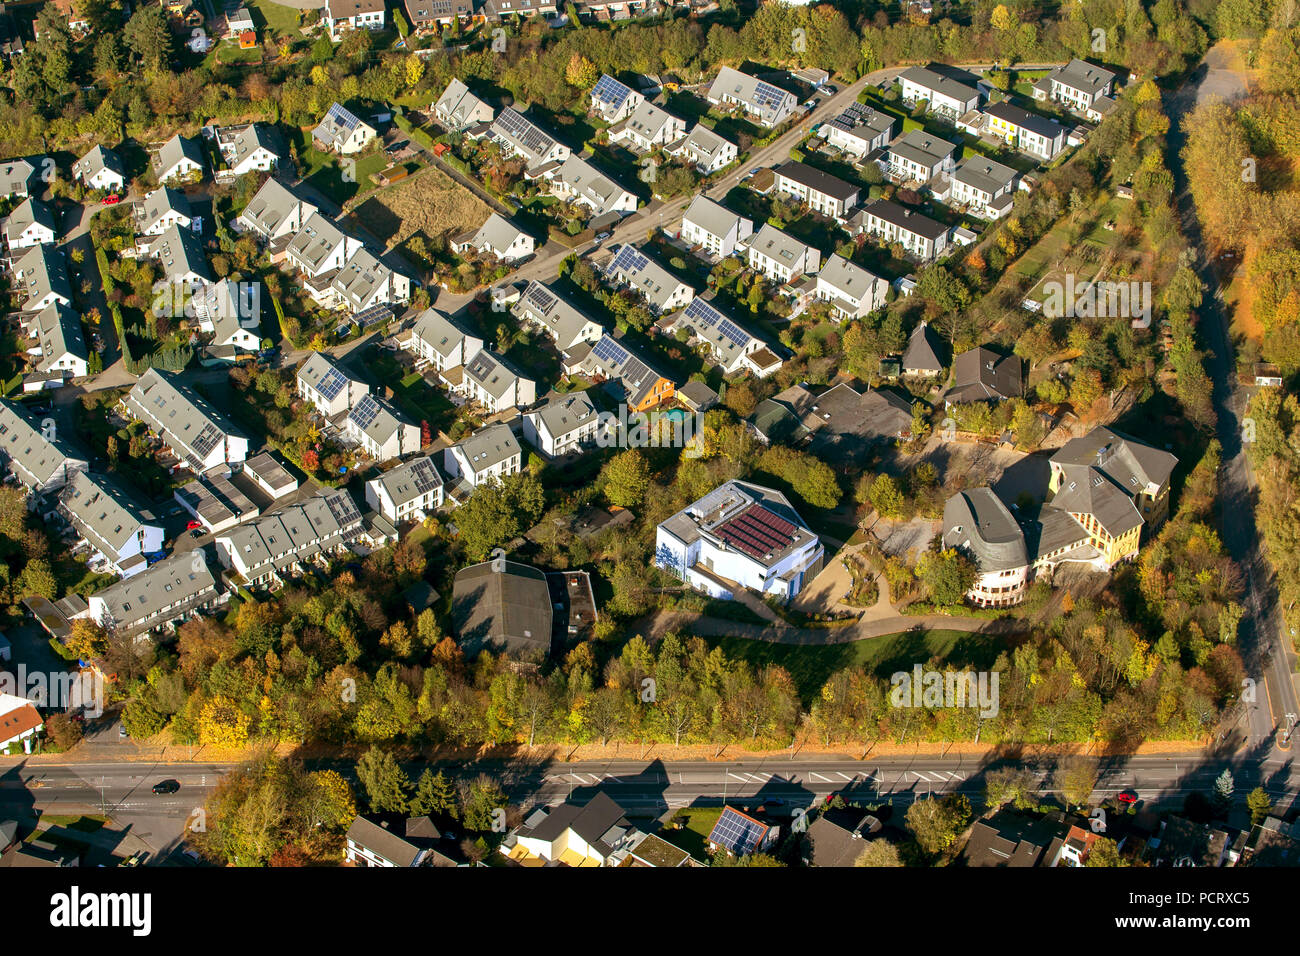 Aerial view, terraced housing, new housing estate Am Stenshof, solar roofs, photovoltaic systems, Waldorf School Hoentrop in autumn, golden october, Bochum, Wattenscheid, Ruhr area, North Rhine-Westphalia, Germany, Europe - Stock Image